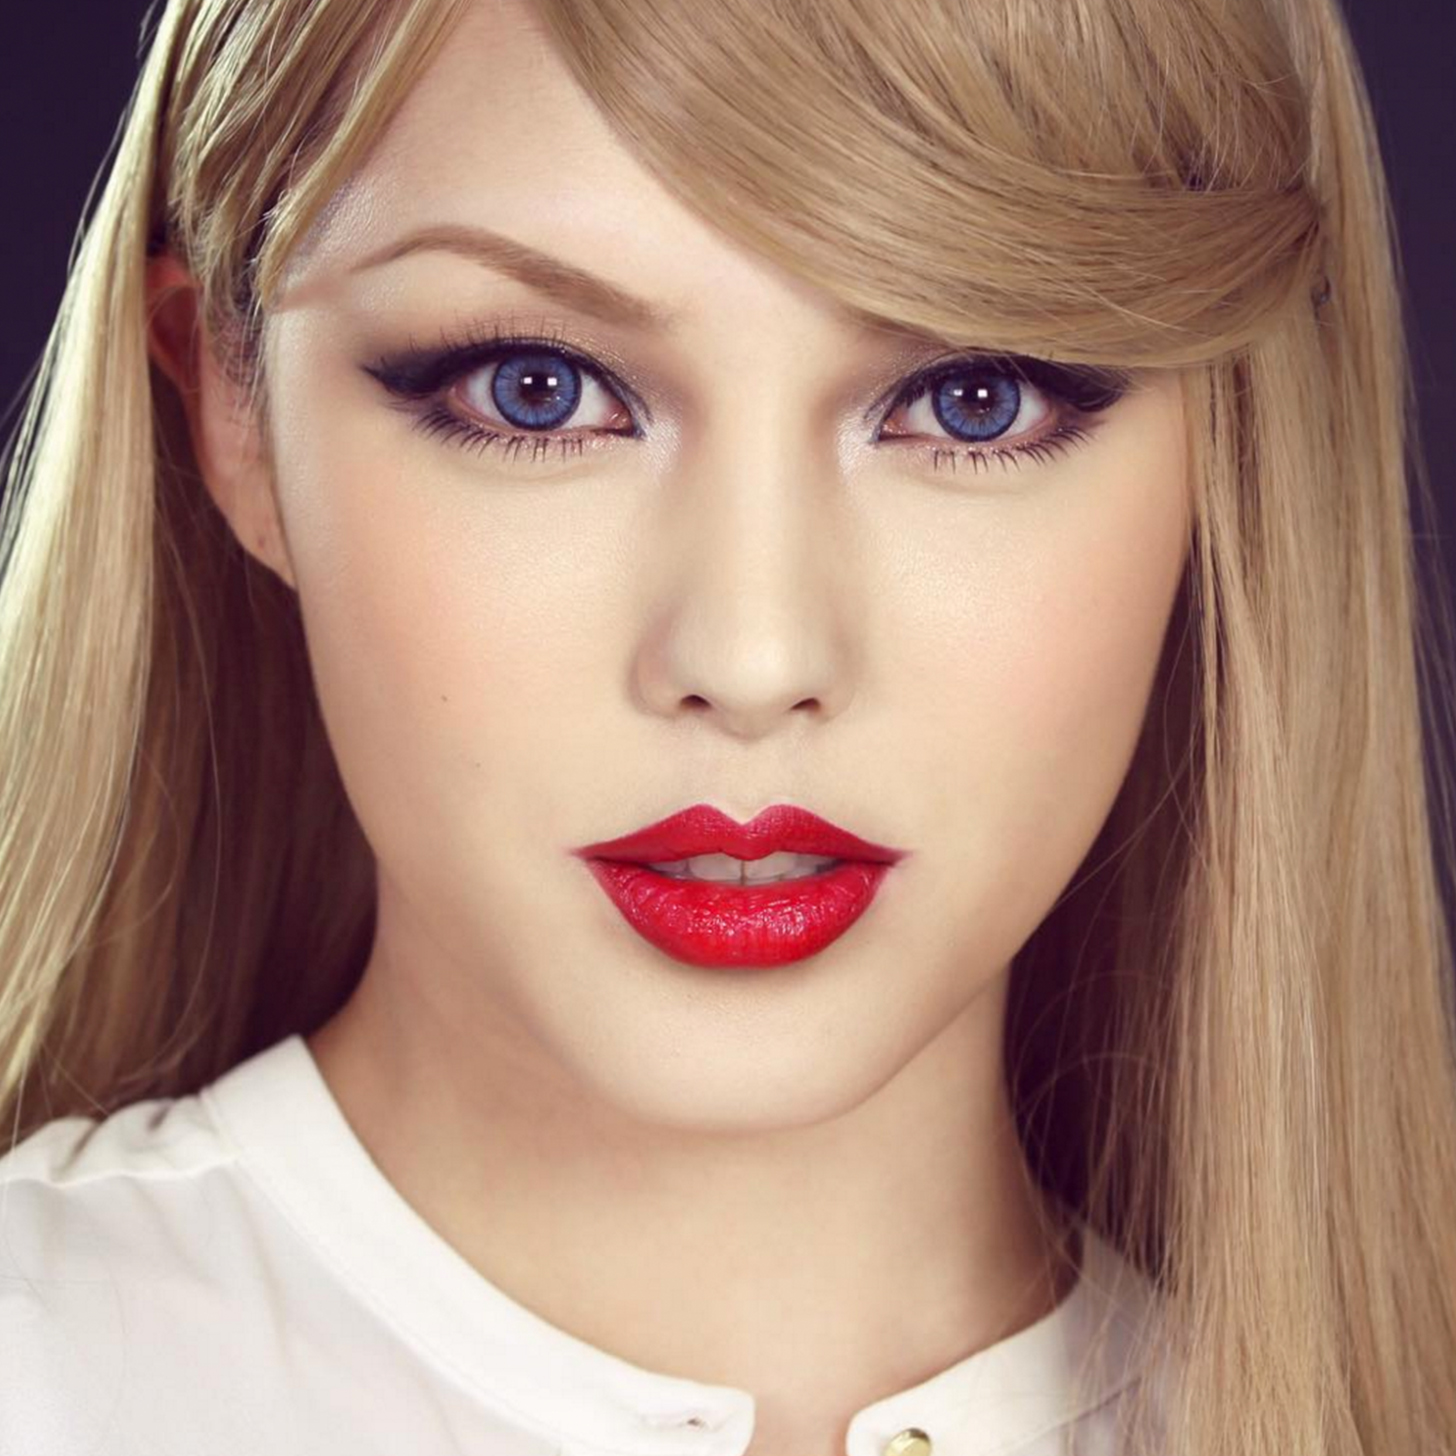 ... Taylor Swift transformation video that will have people mistaking you